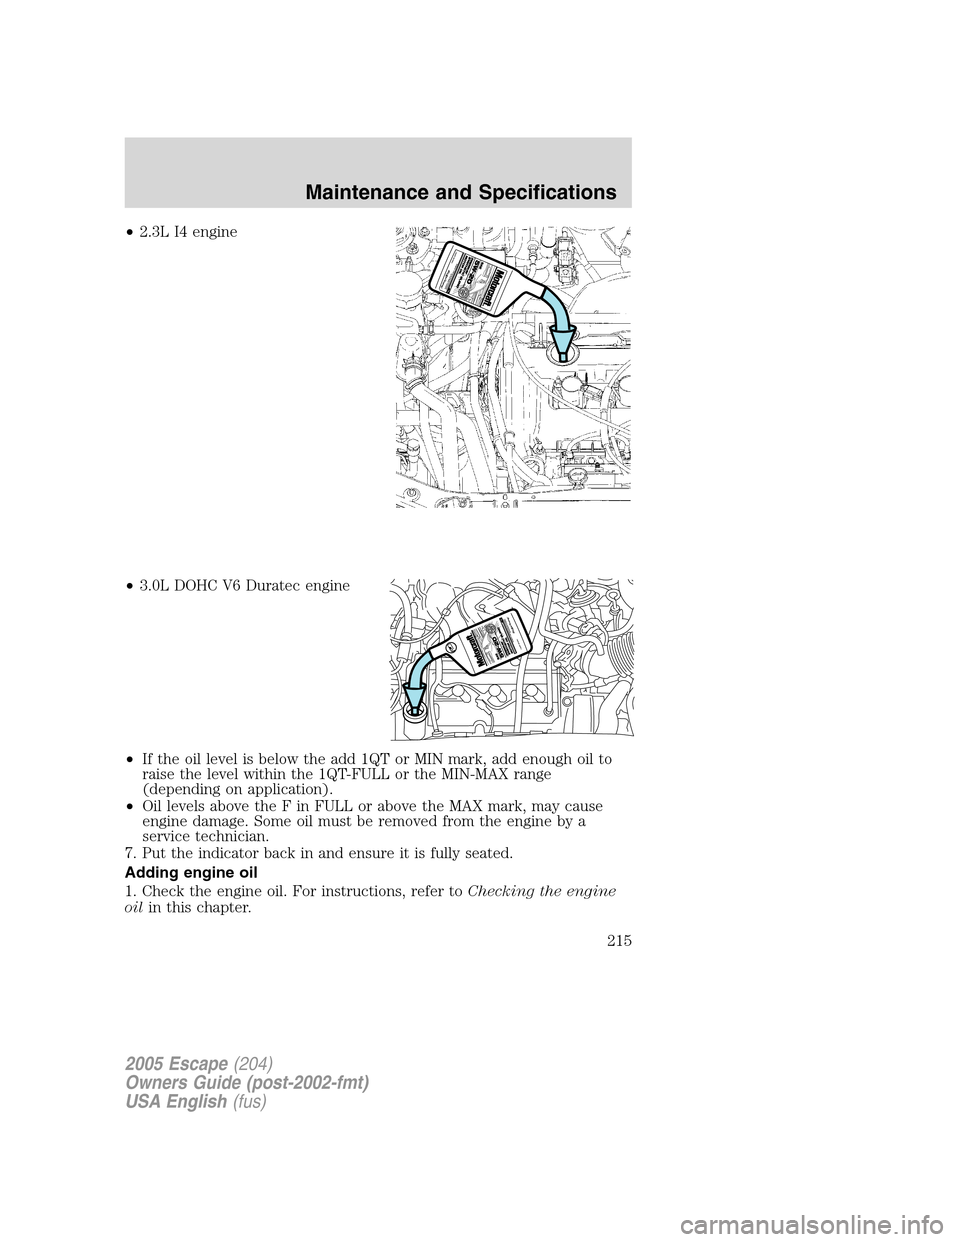 Oil Level Ford Escape 2005 1g Owners Manual V6 Engine Diagram Page 215